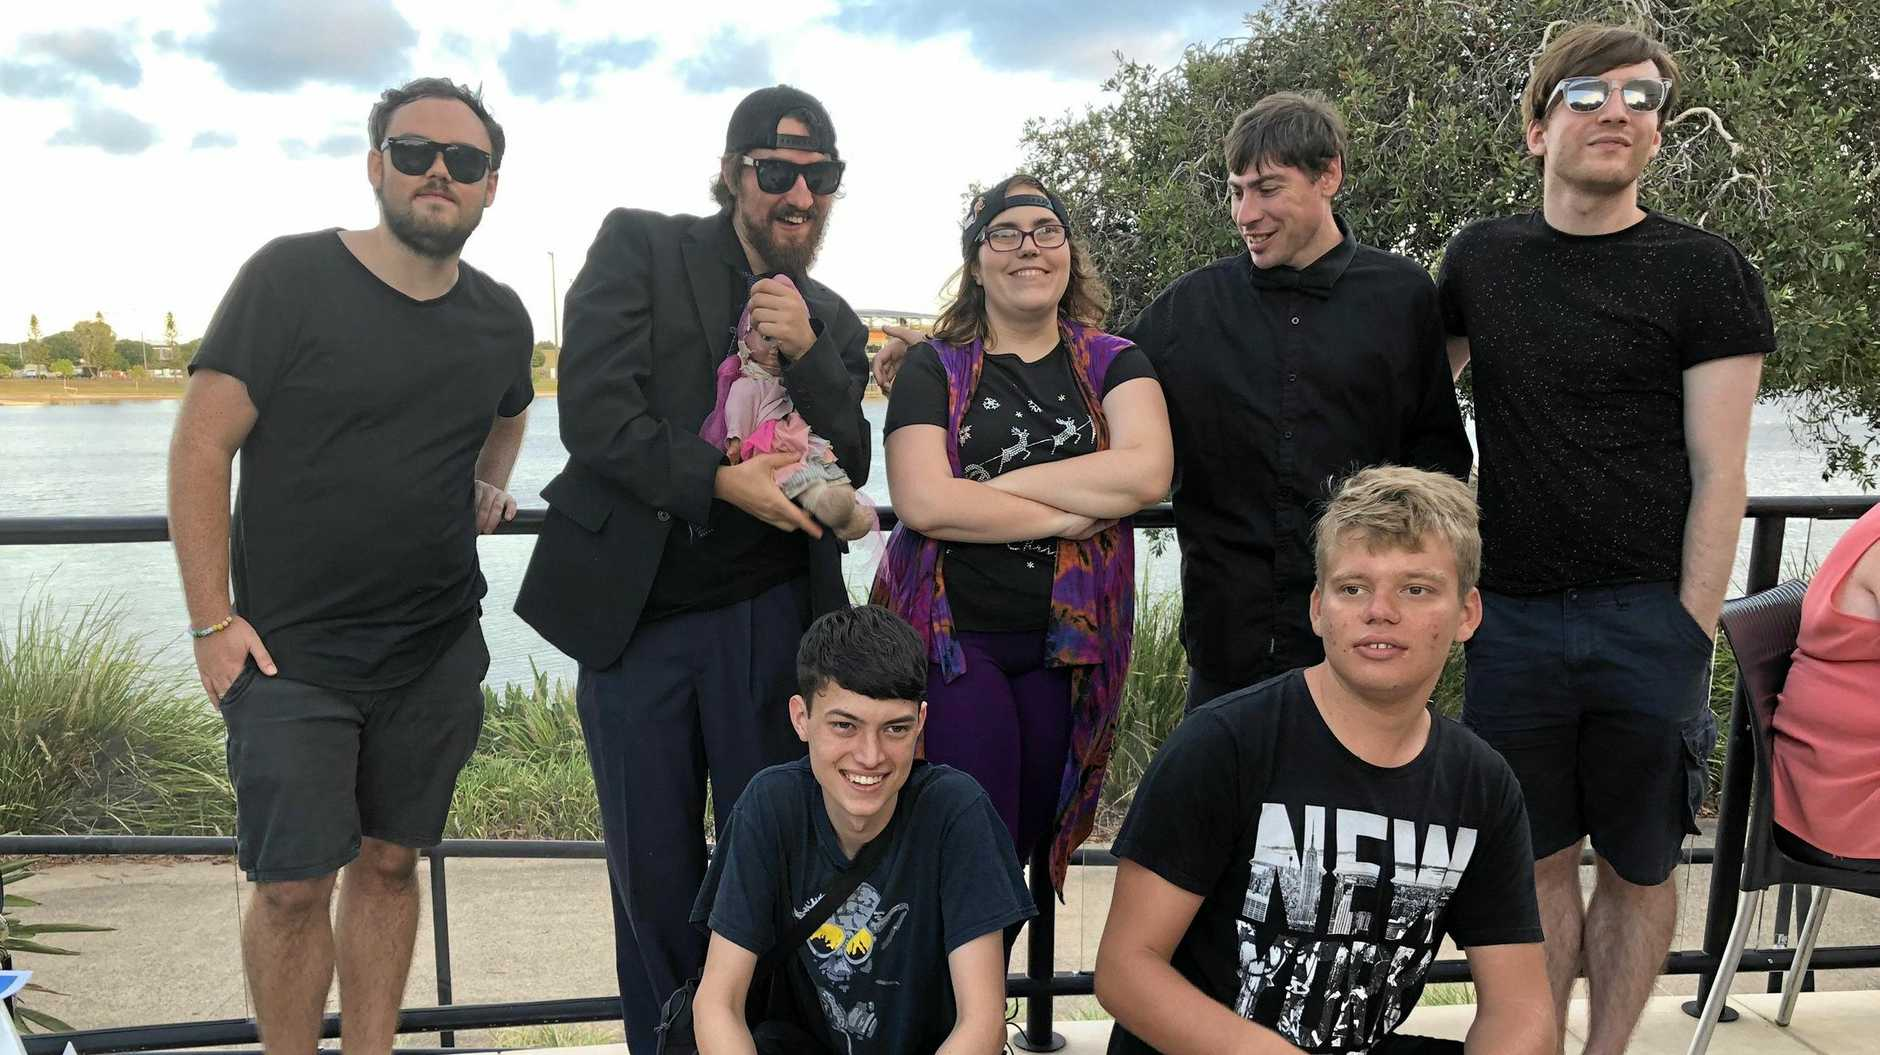 Sunshine Coast band The Outsiders has recorded a national anthem advocating for people with disabilities. Front left to right: Cal Young, Corey Bourke; Back left to right: Patrick Isles, Jesse Van-Handley, Allycia Staples, Nick Dow, Matthew Graham